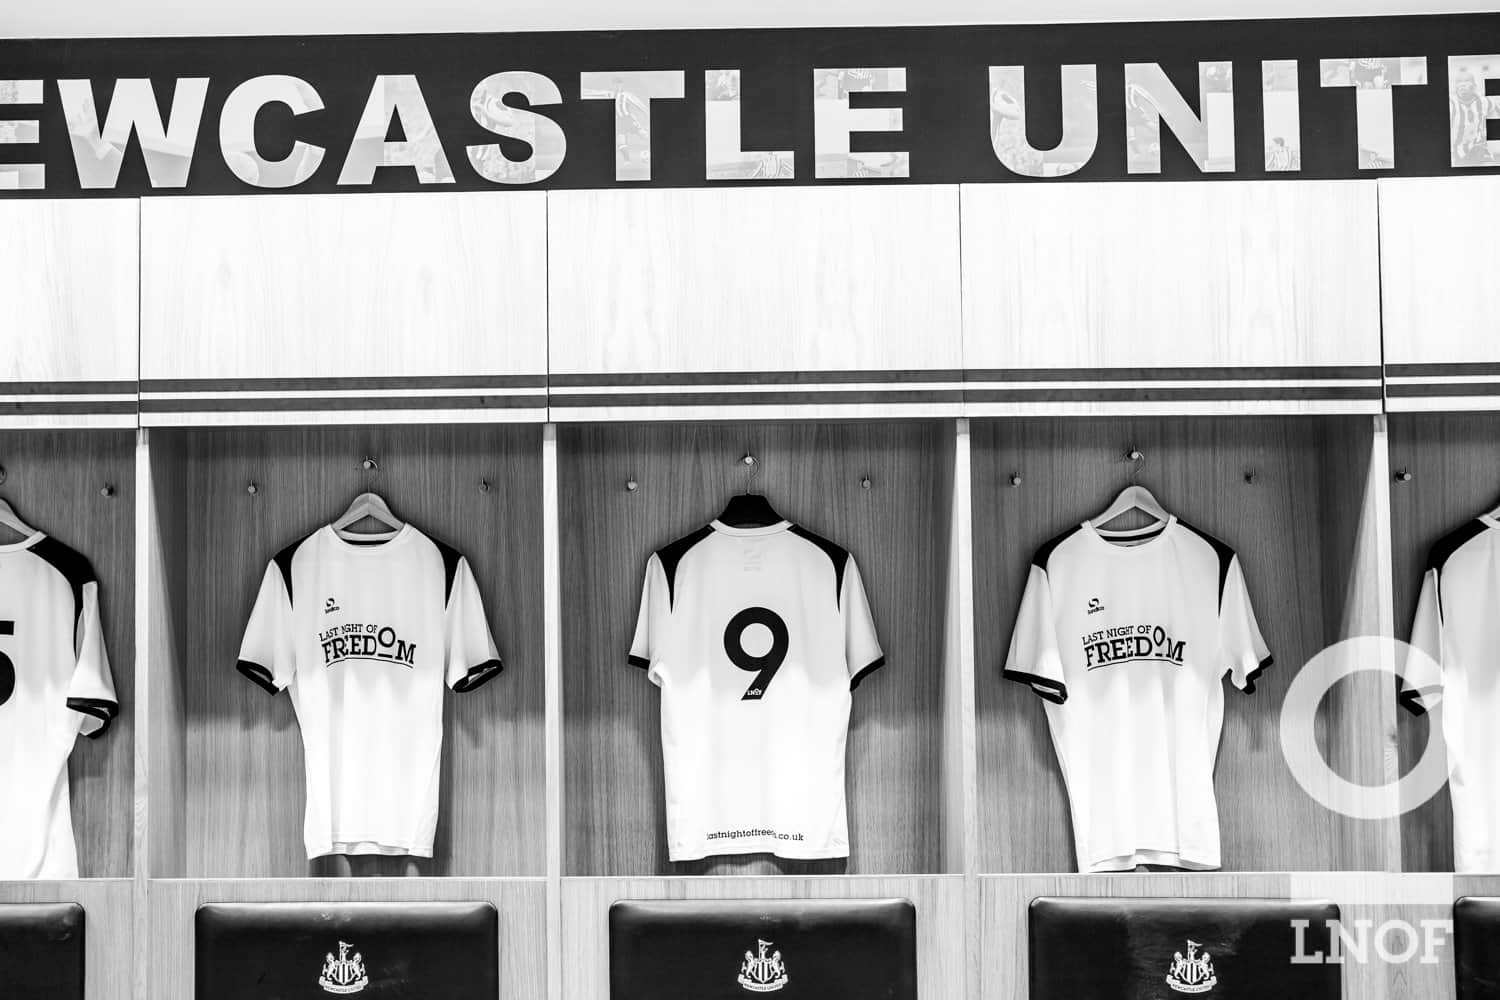 LNOF number 9 in NUFC changing rooms